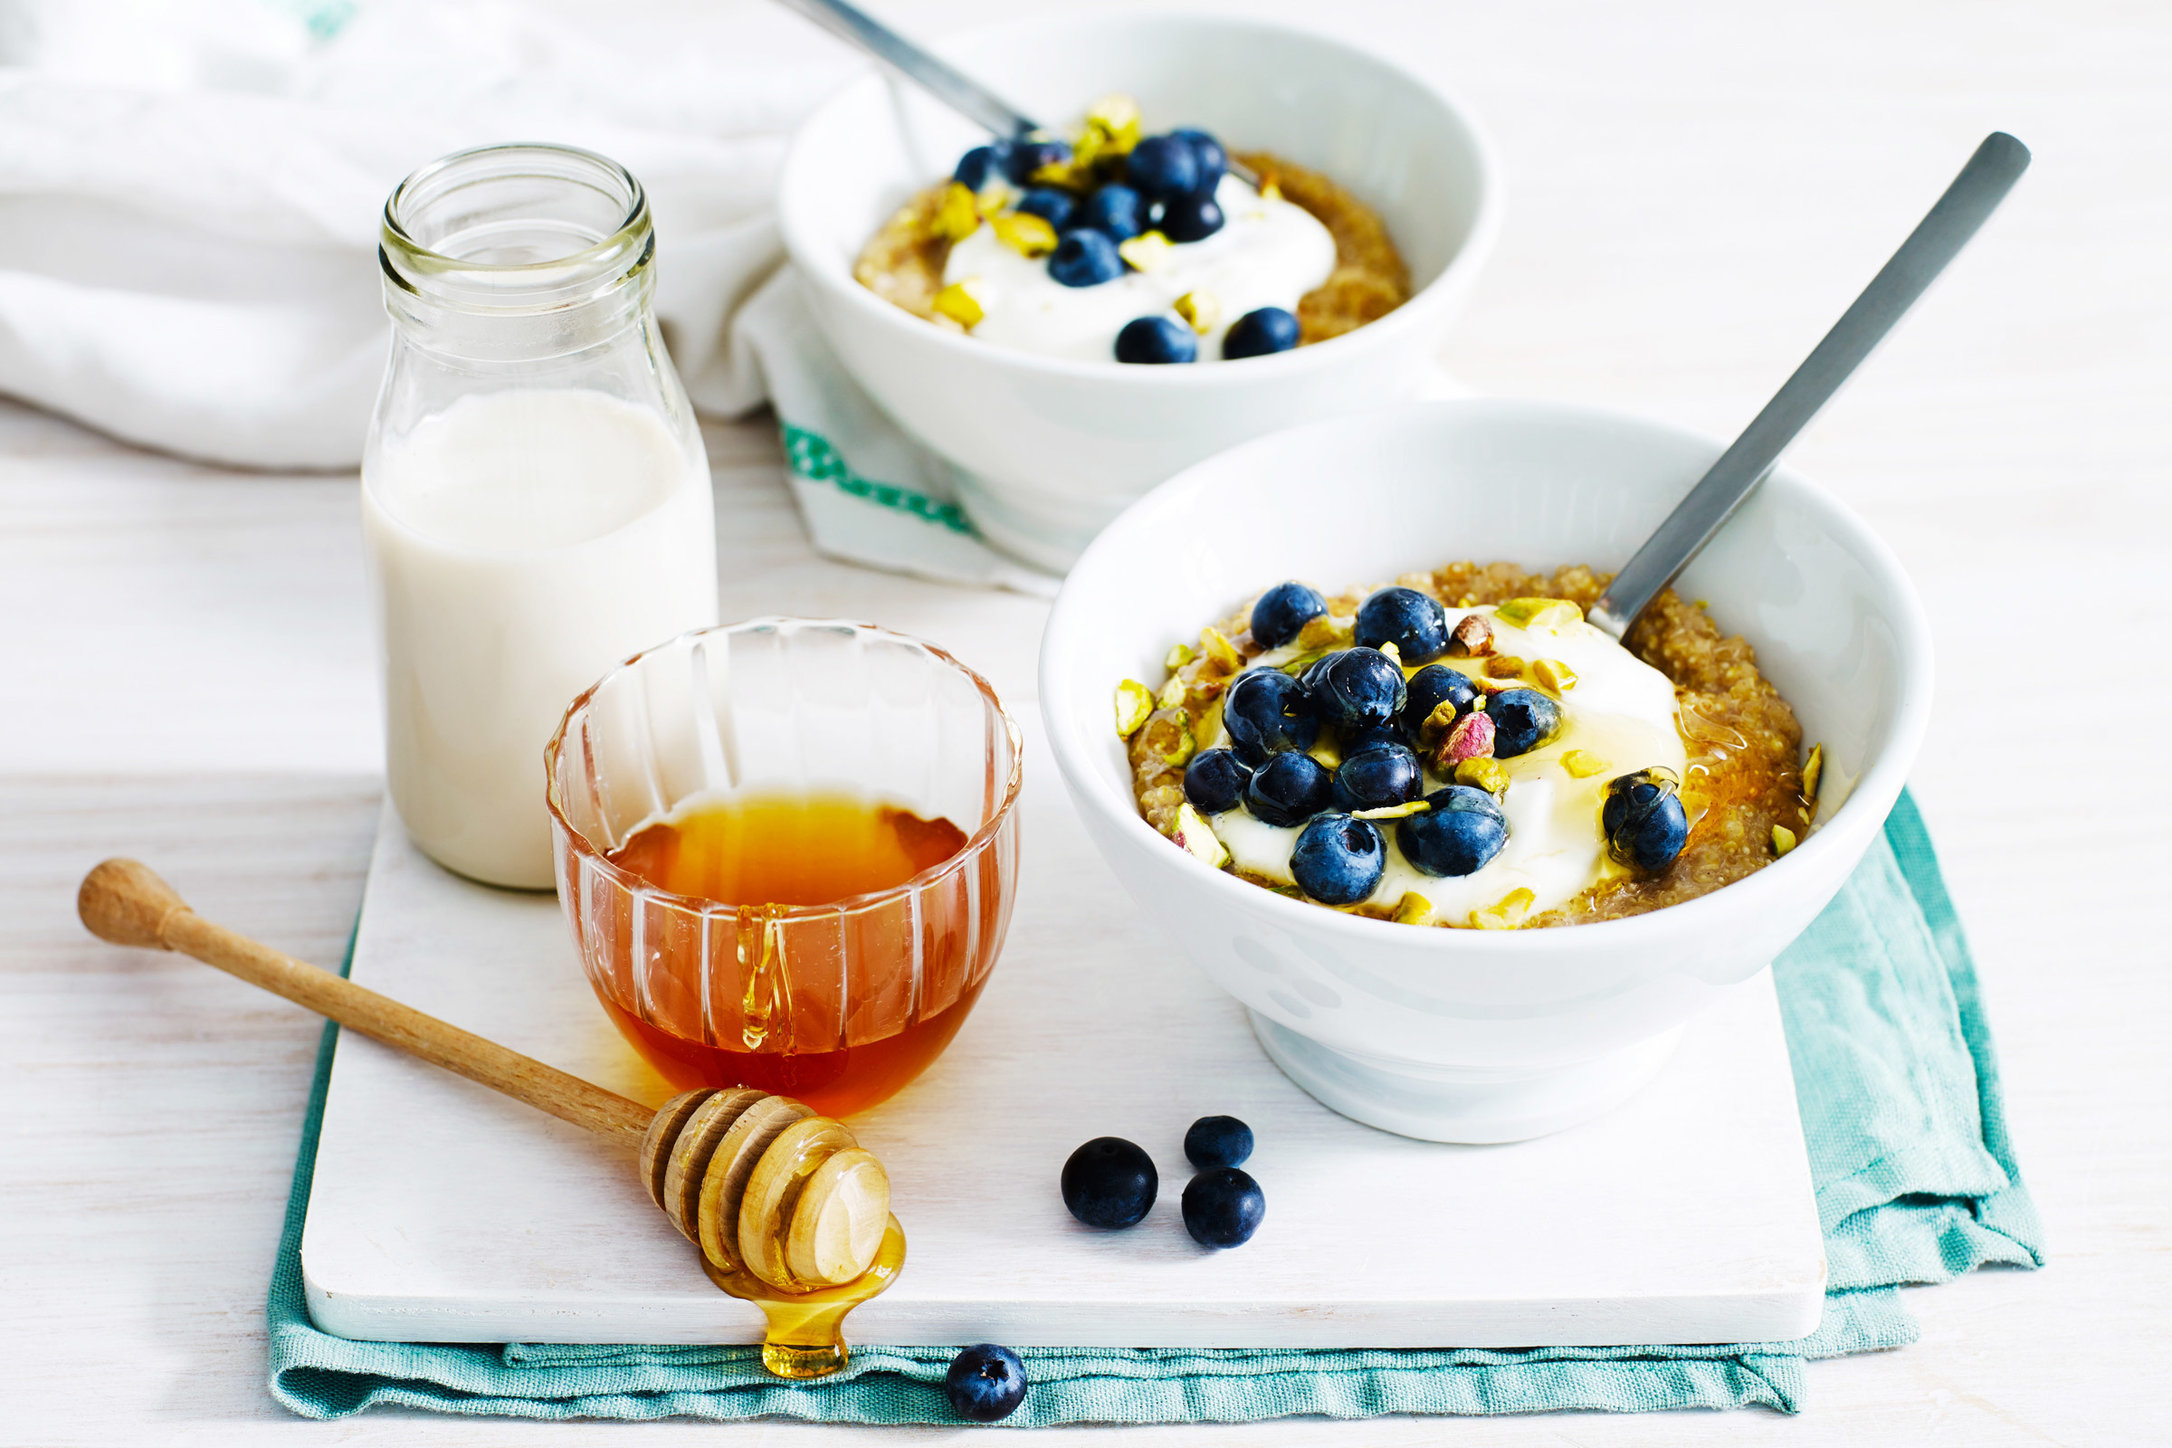 Andy-Lewis©Food-photographer_Food-Photography_Coles_June_Almond-Milk-Quinoa-Porridge_63150.jpg